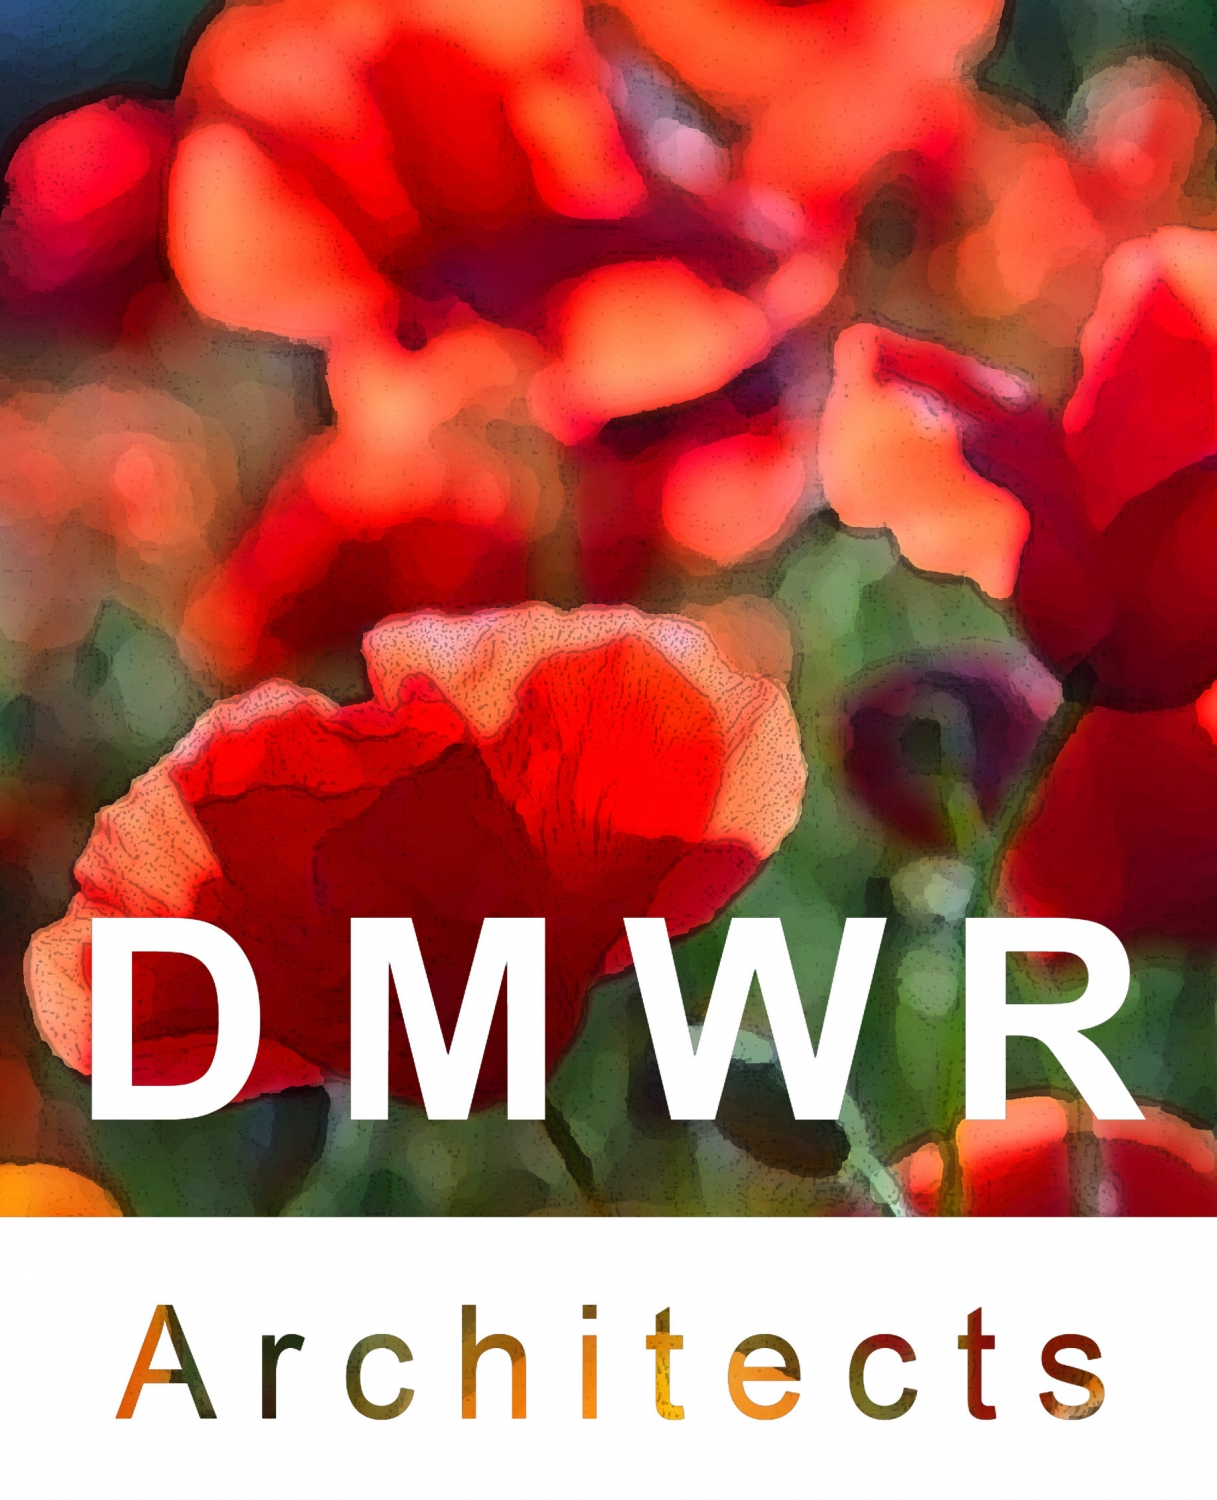 DMWR Architects